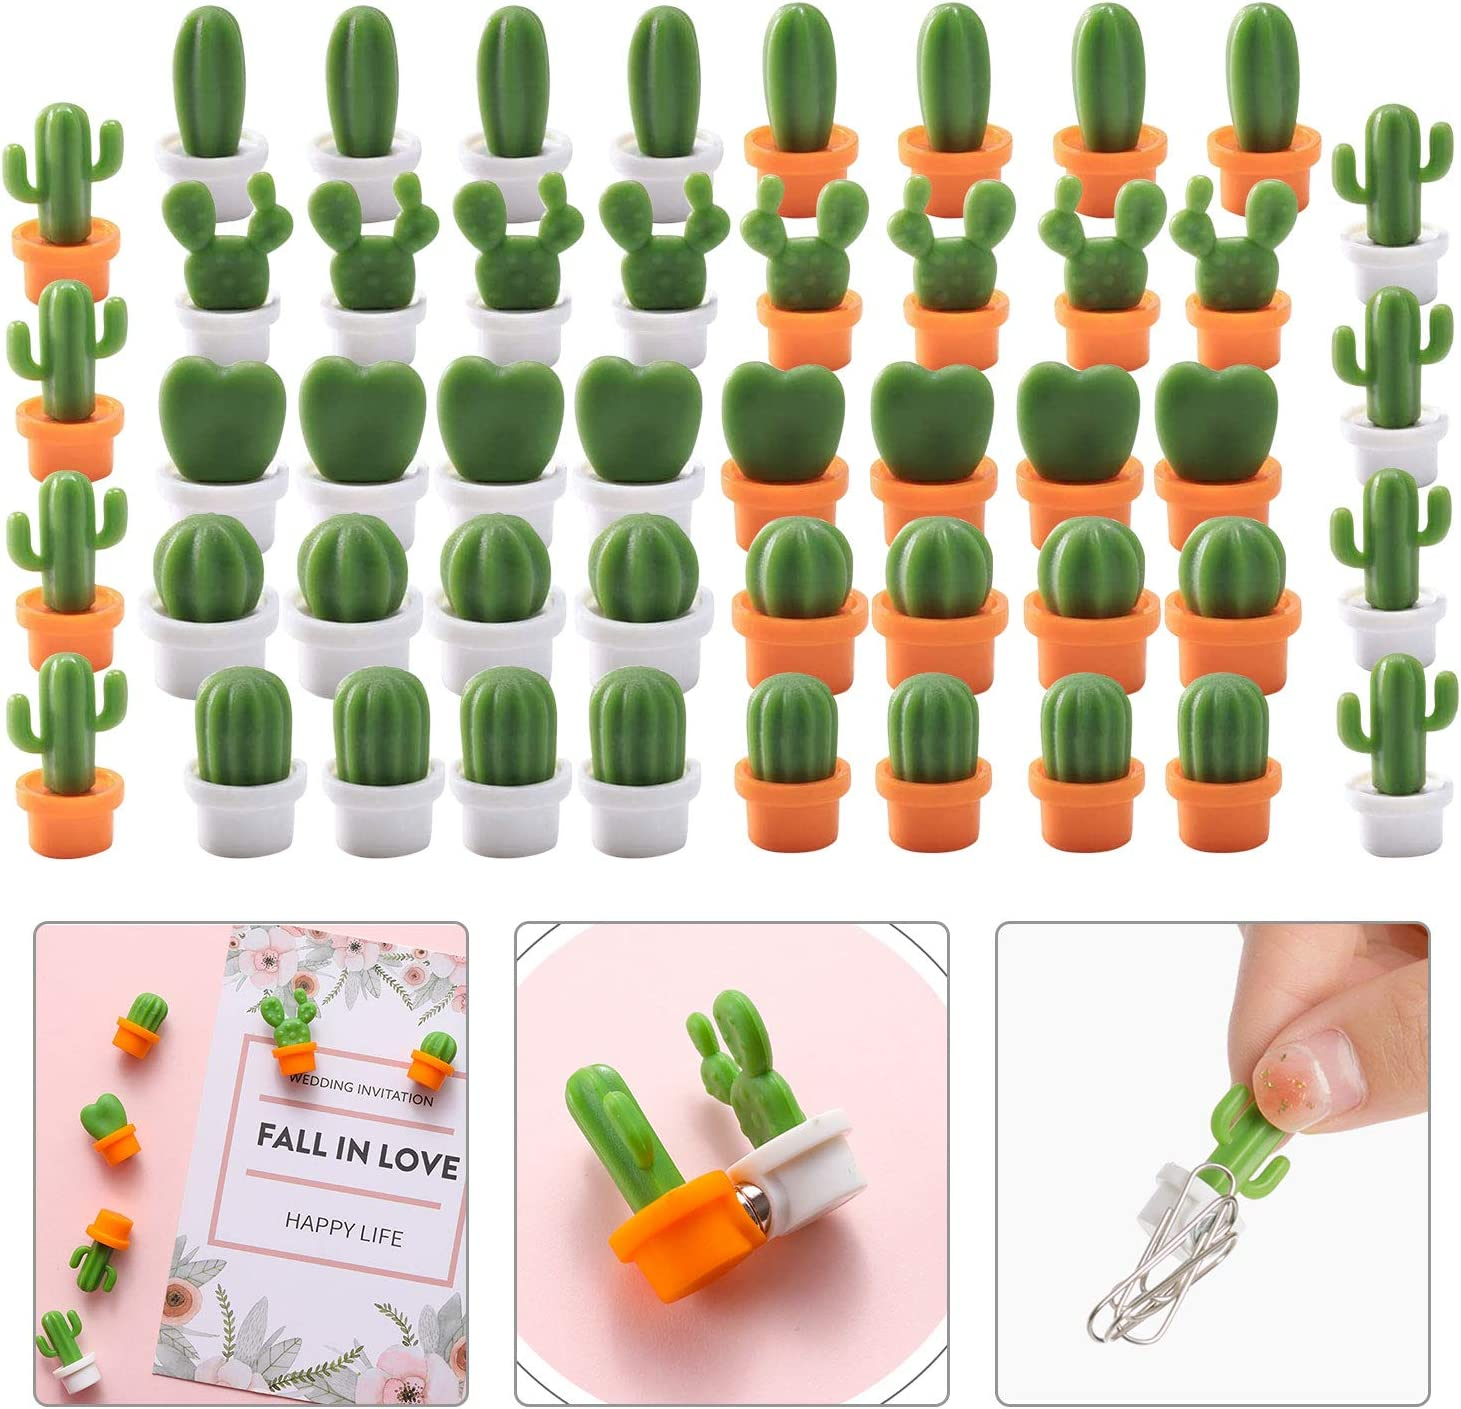 Home Decorative Magnets 12pcs Cute GreenPlanet Cactus Fridge Magnets Refrigerator Locker Magnet Funny Home-Deco for Home House Office Personal Use